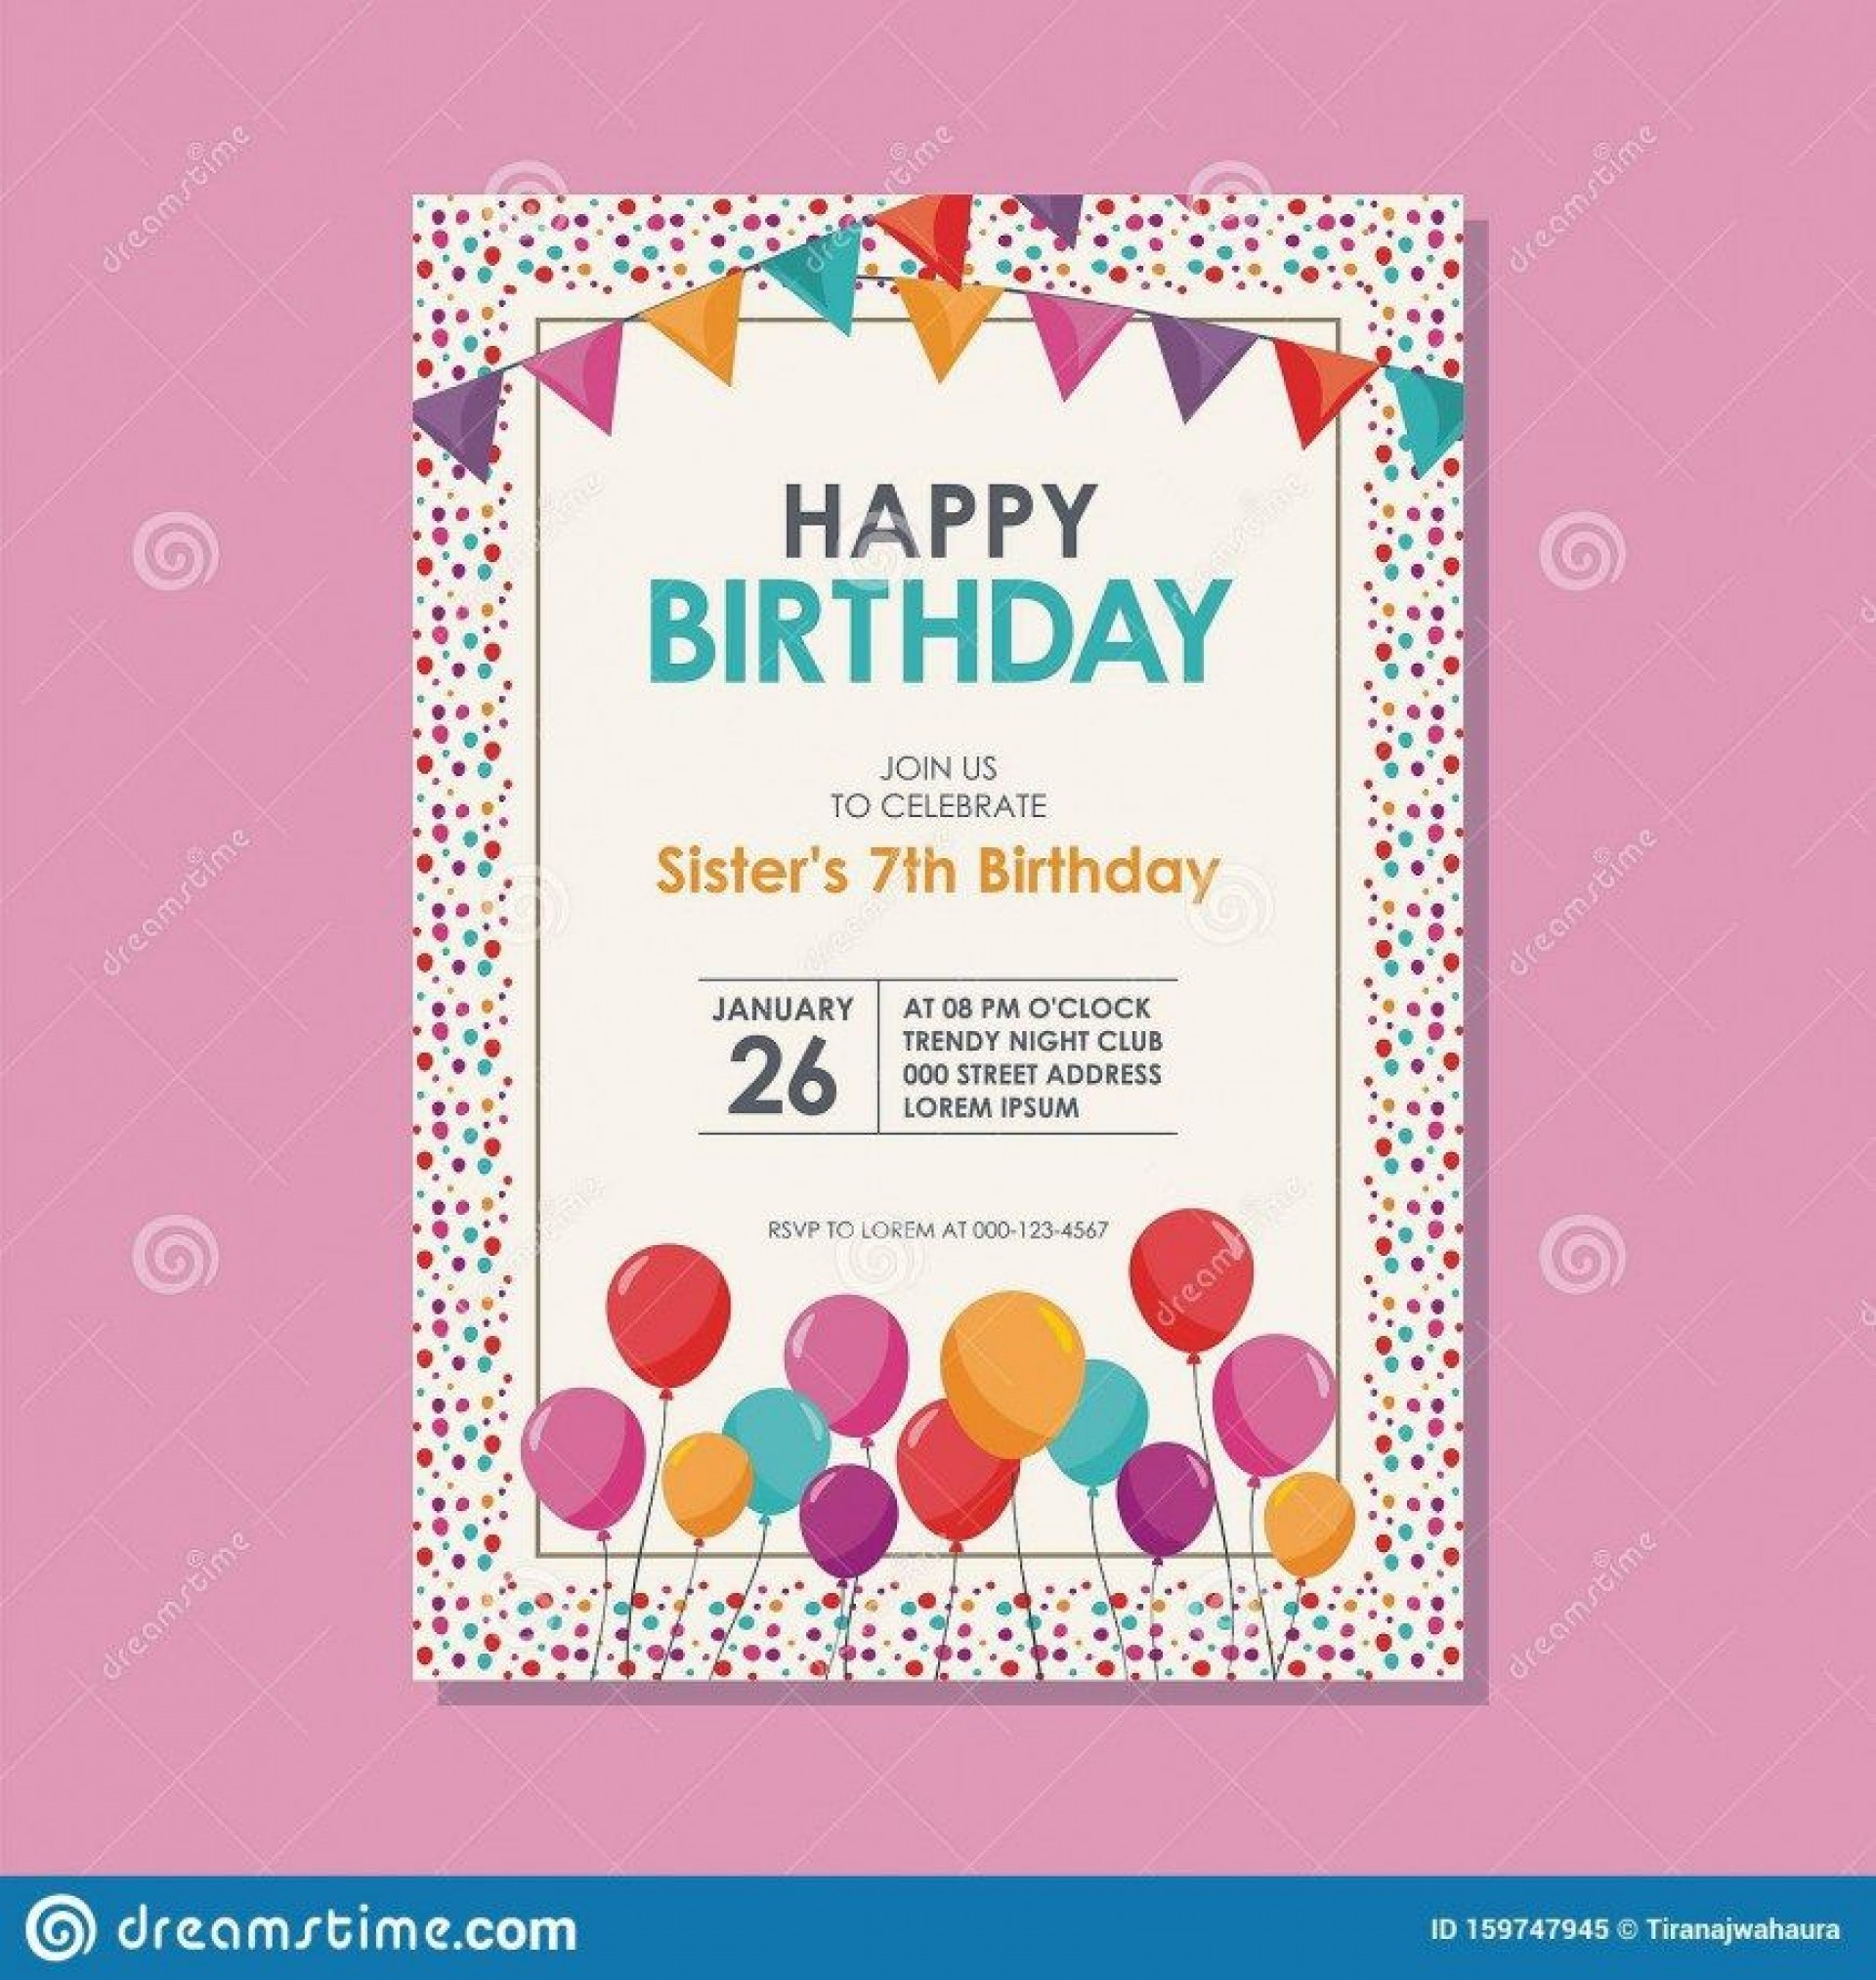 008 Awesome Birthday Card Template For Word 2010 Concept  Greeting Microsoft1920